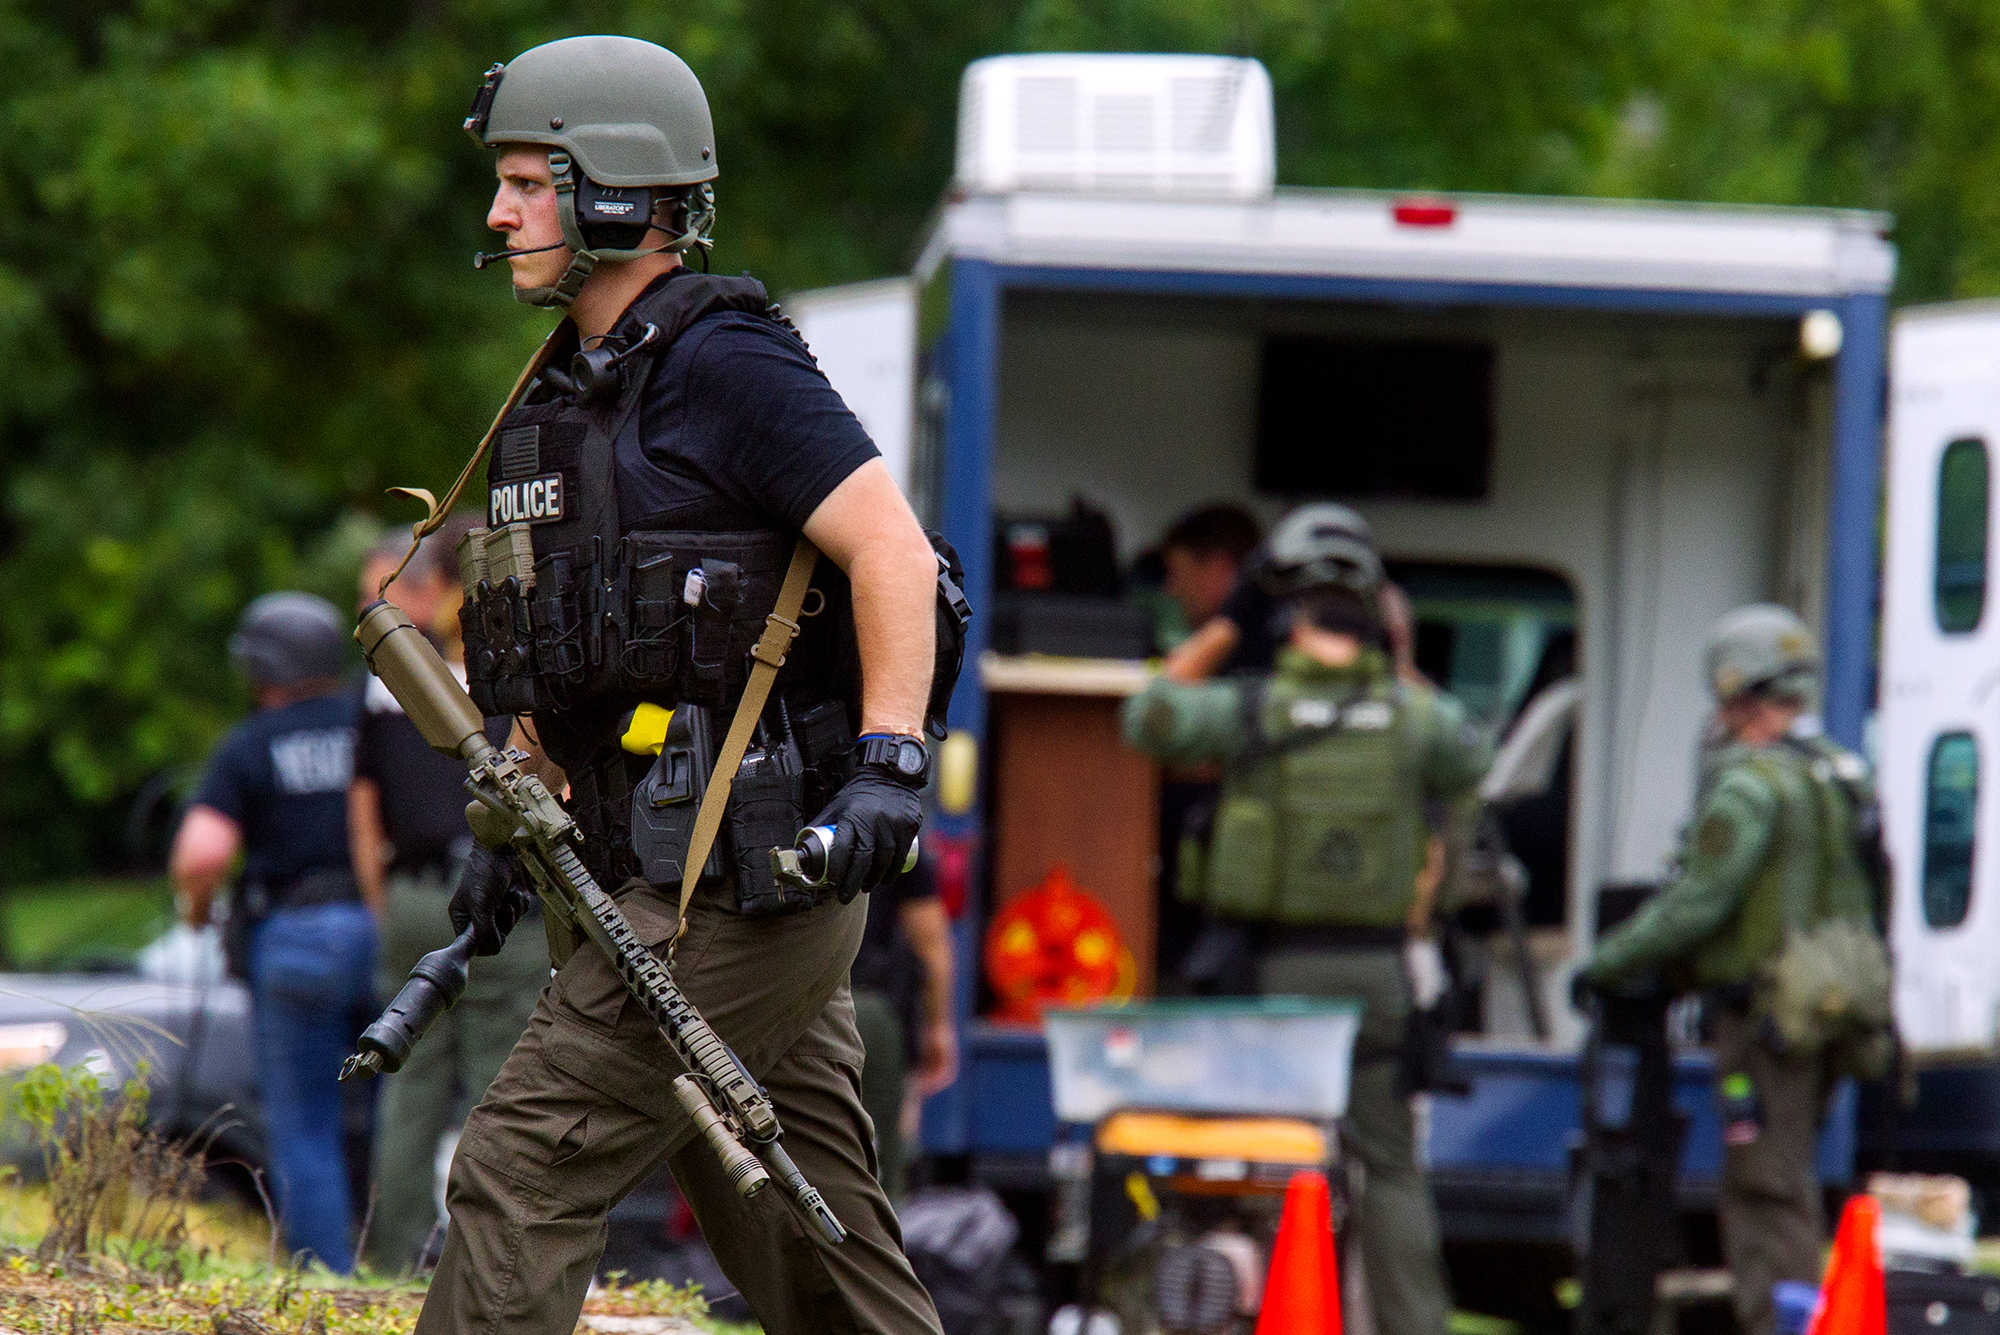 A Springfield Police officer moves into position during a nearly six-hour standoff at an apartment complex on Seven Pines Road in Springfield Tuesday, Aug. 7, 2018. [Ted Schurter/The State Journal-Register]